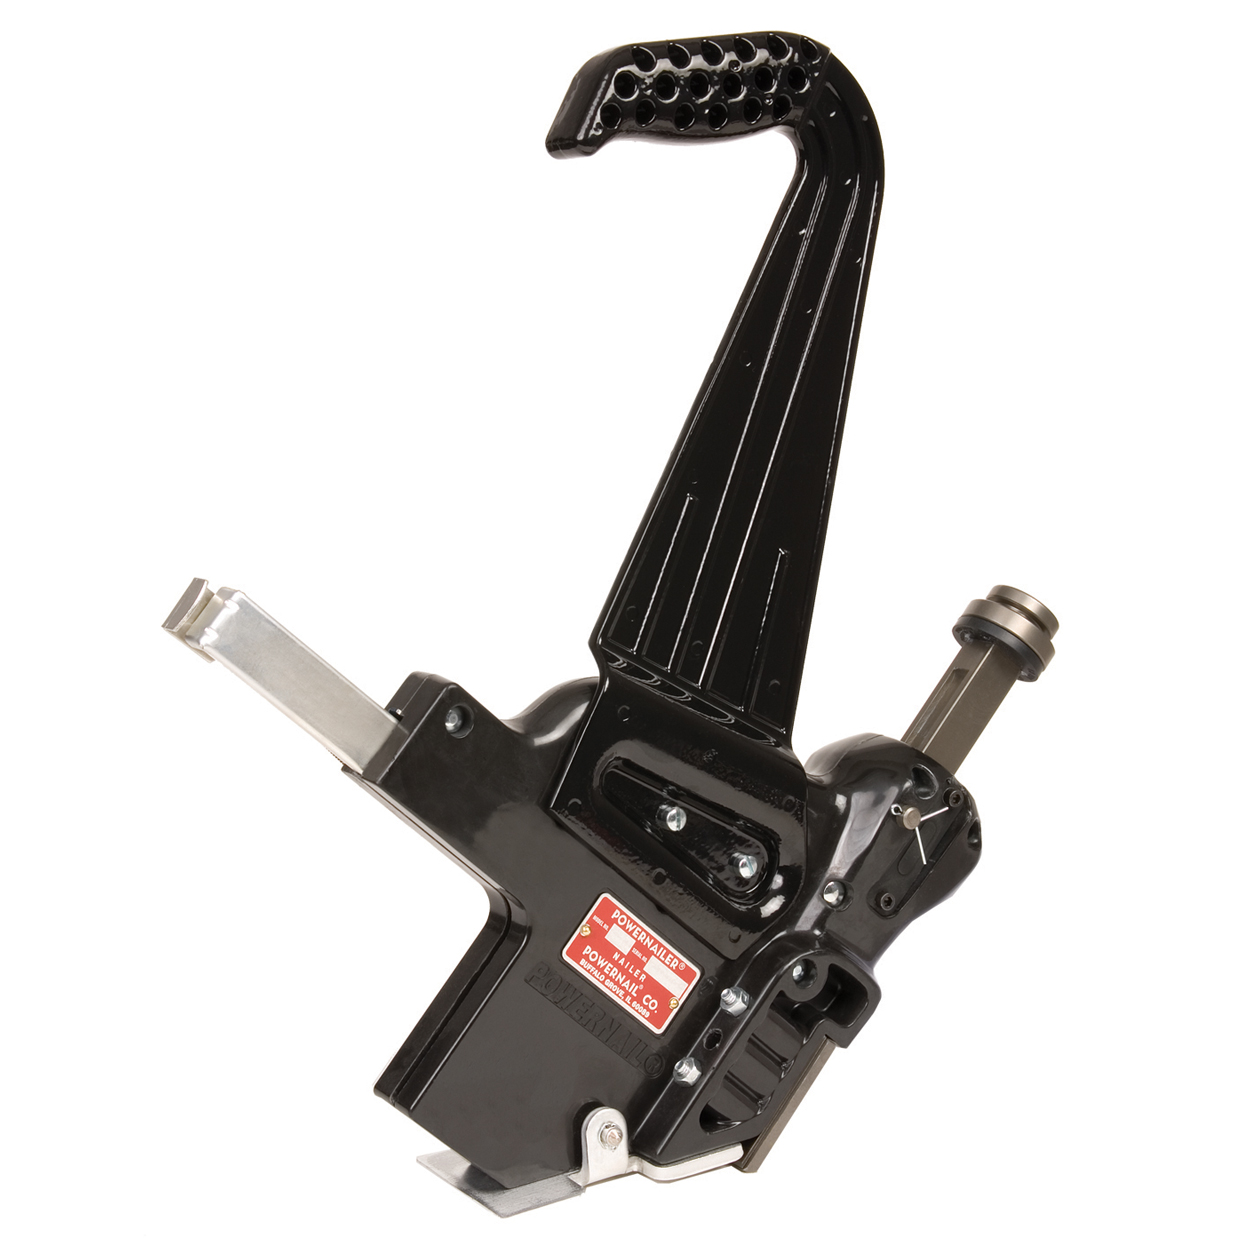 45R – Manual 16-Gauge Flooring Nailer